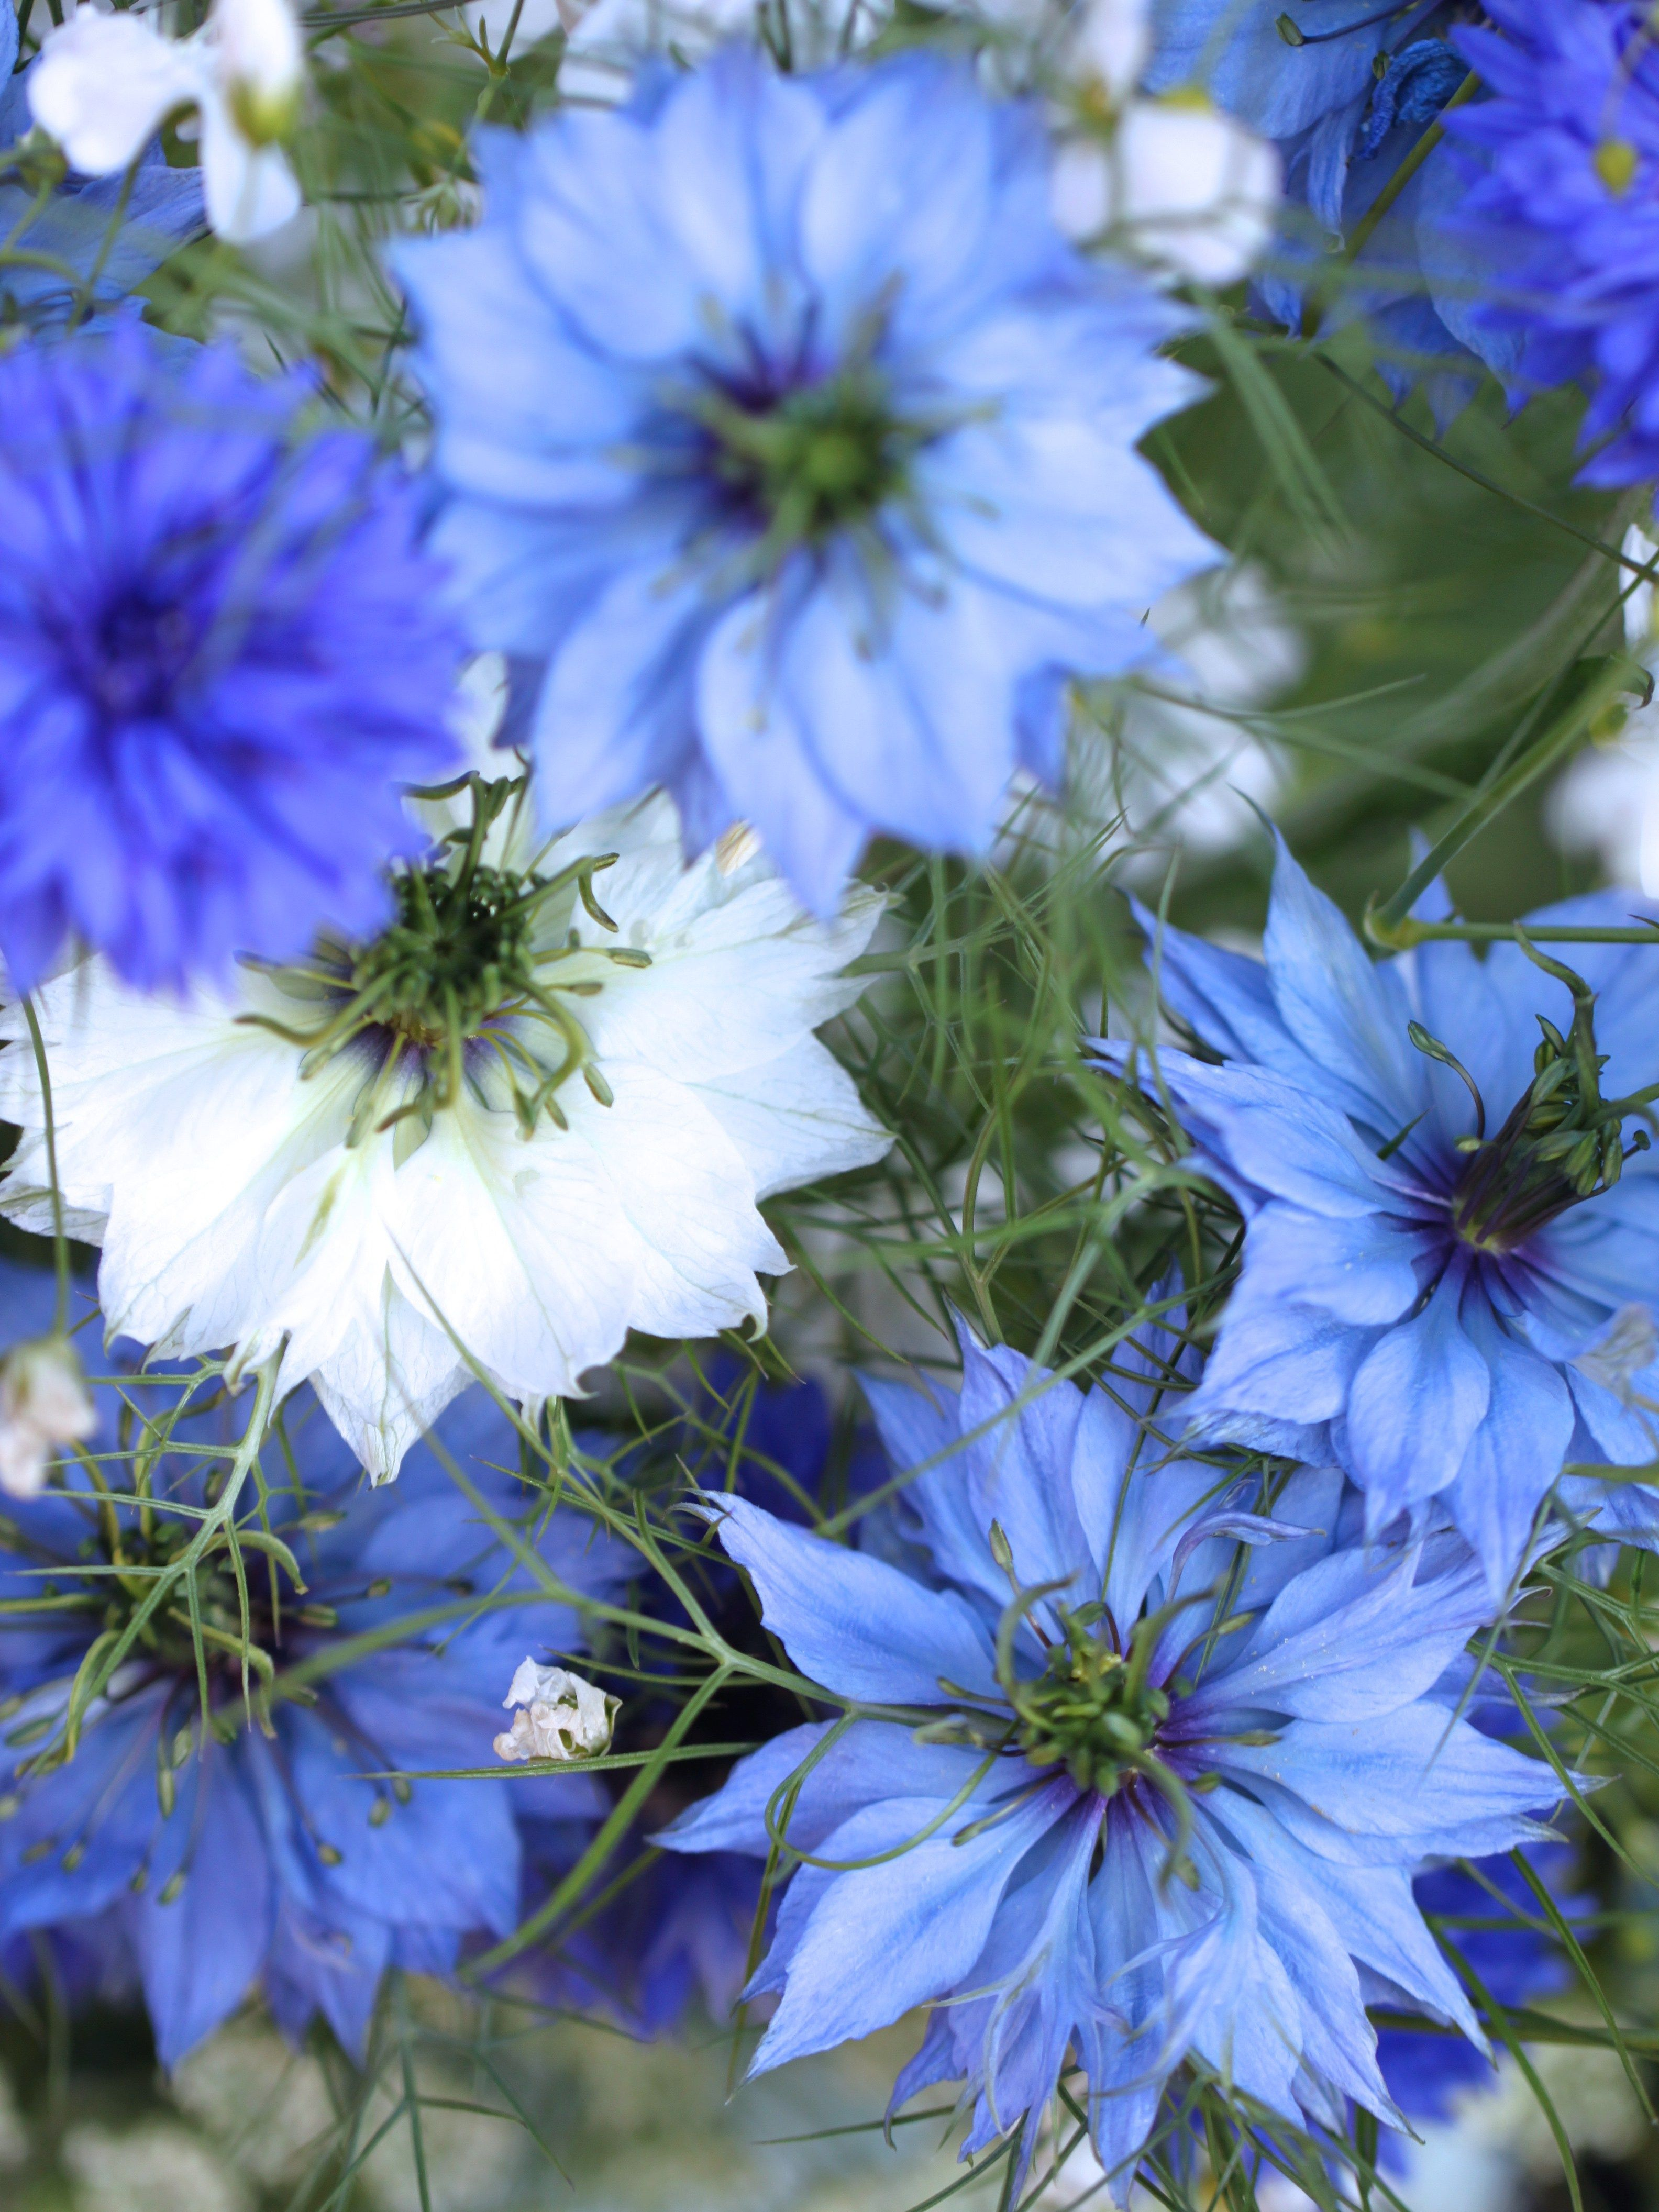 Annual Flower Seeds To Sow This Autumn